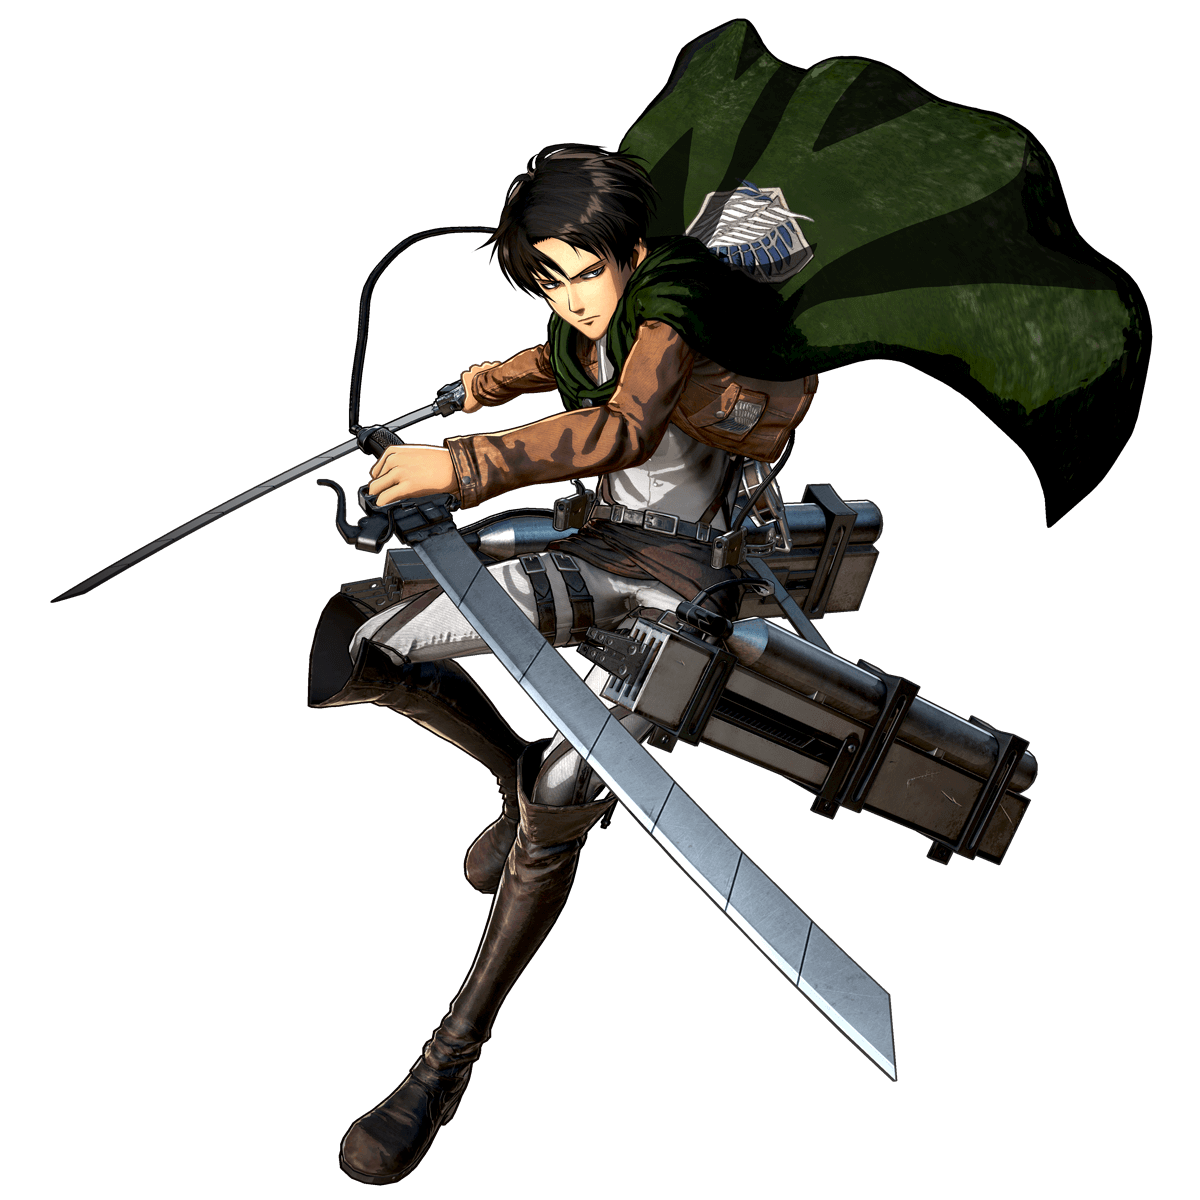 File:Levi.png